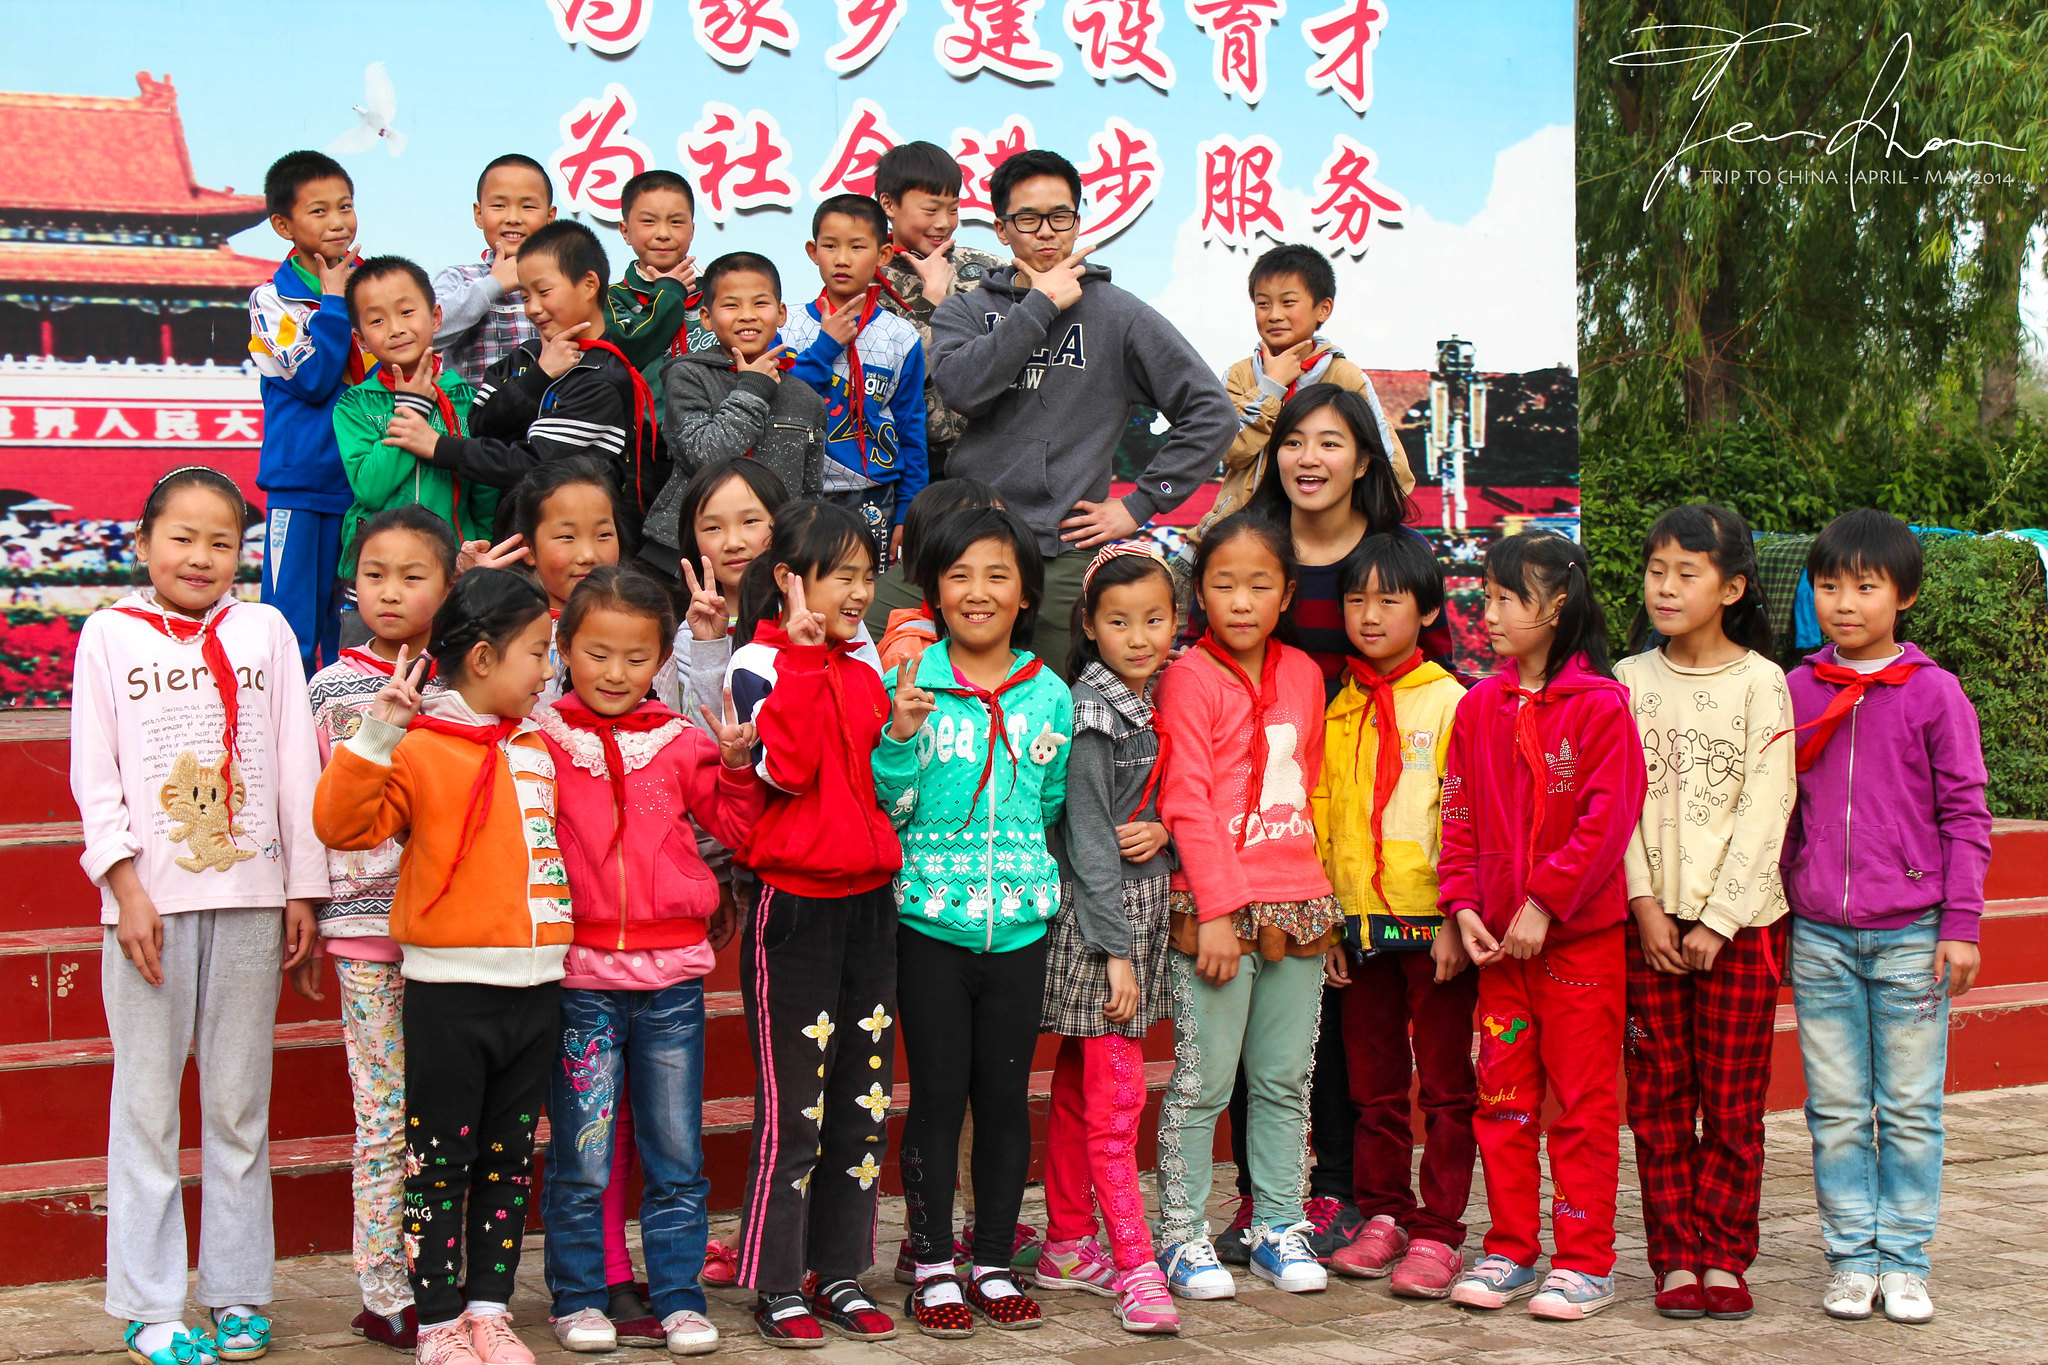 teaching English at a Village school in Weinan (Shaanxi province)